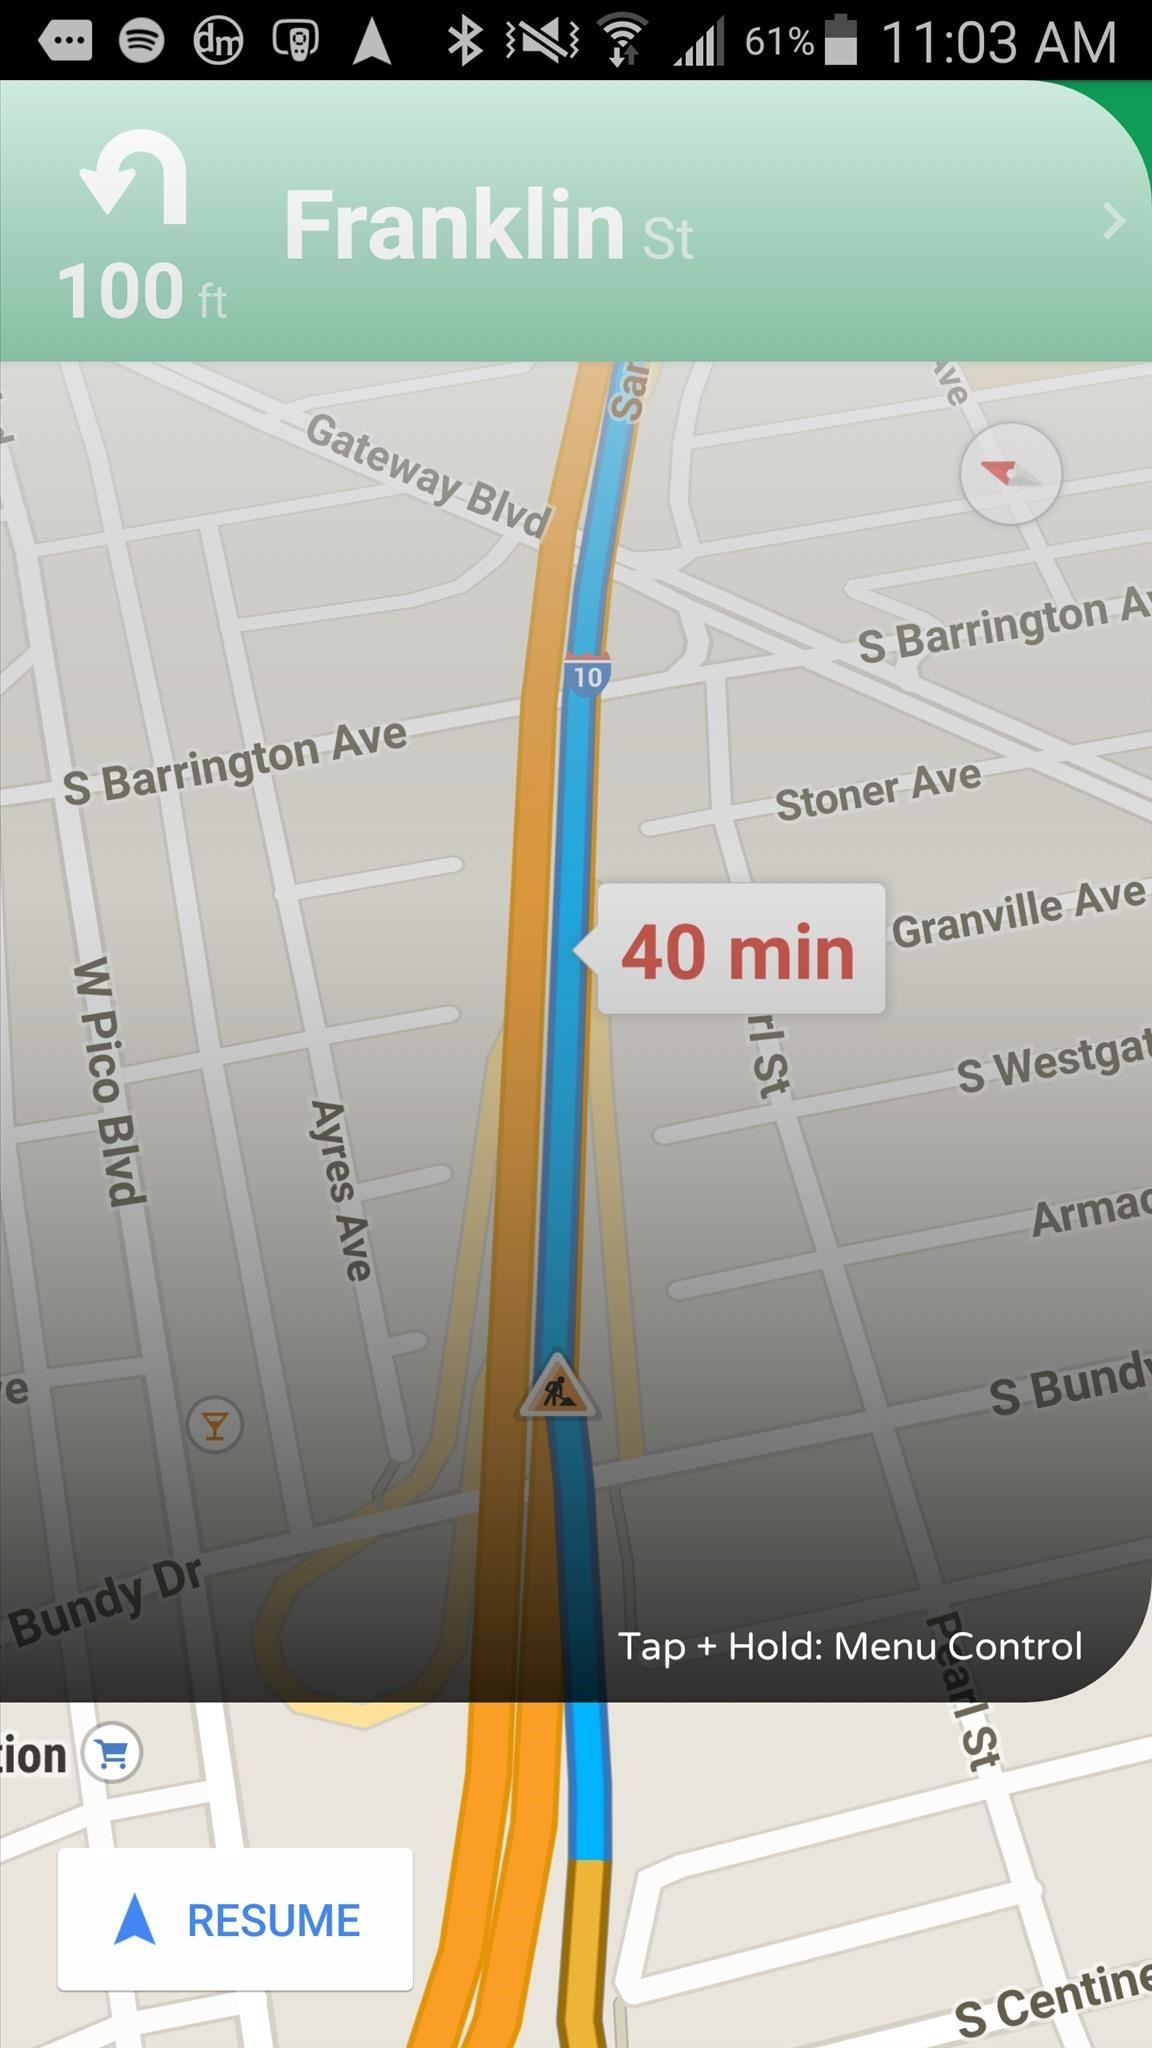 Simplify Your Android's UI for Less Distracted Driving